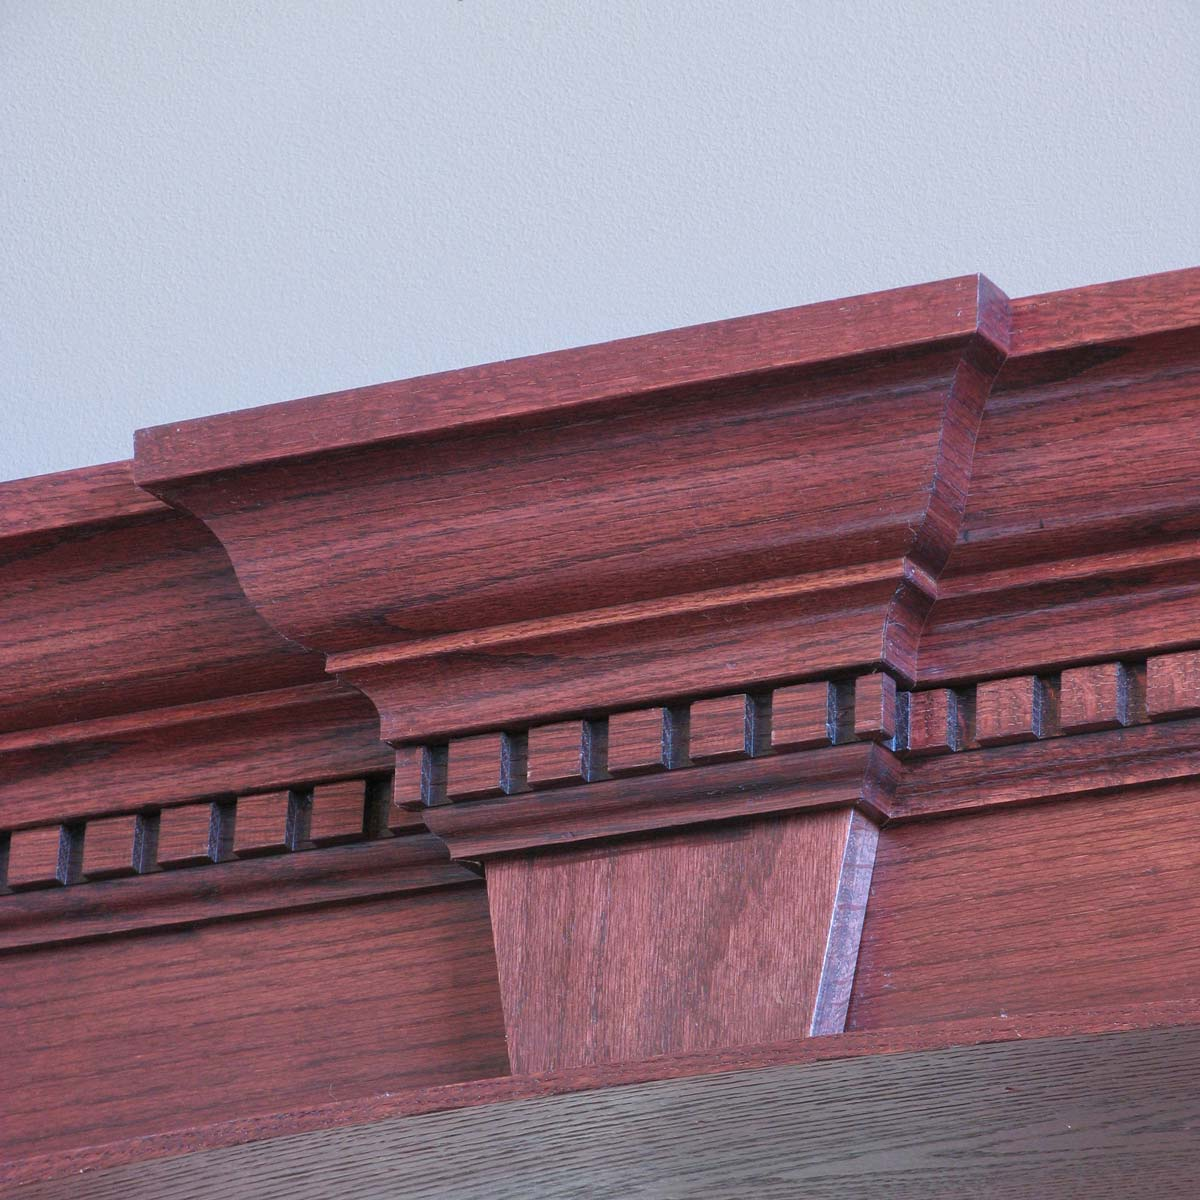 Cherry or walnut crown moulding with a decorative center jutting out